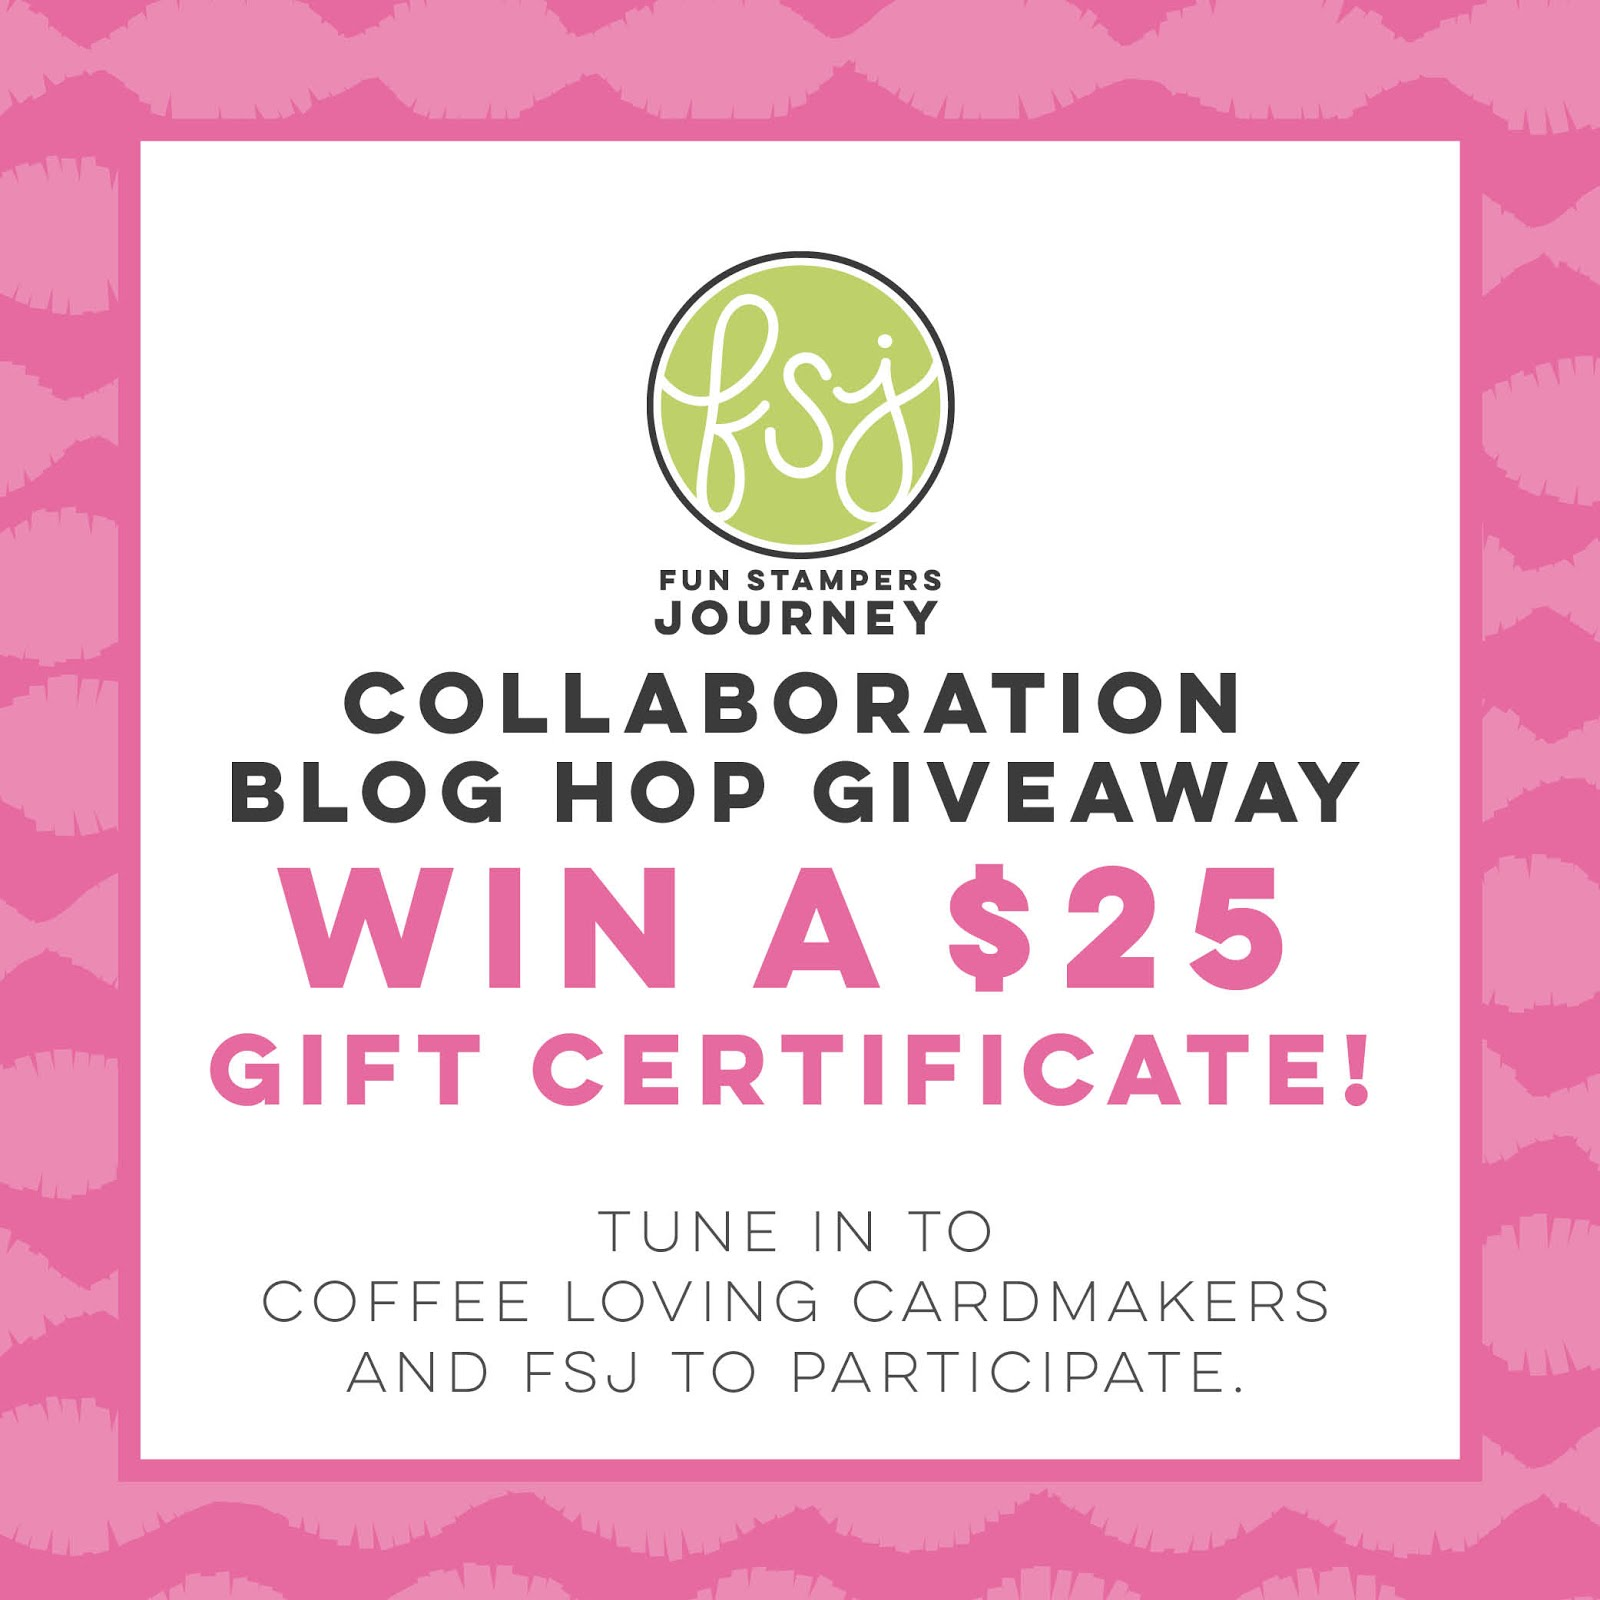 HOP and WIN!